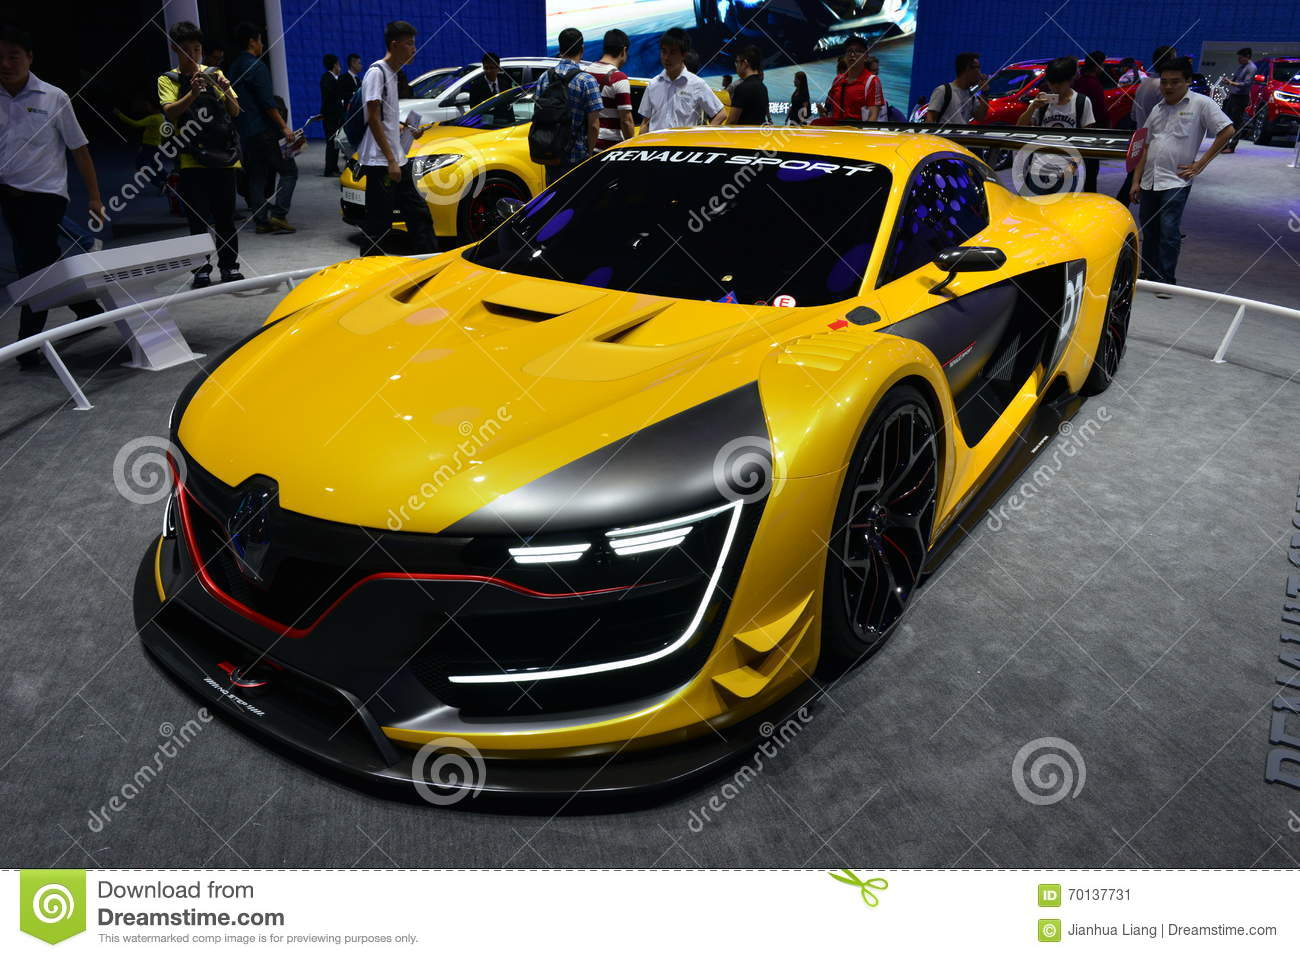 Renault r s voiture de course 01 photo ditorial image du salon type 70137731 - Voiture de course image ...